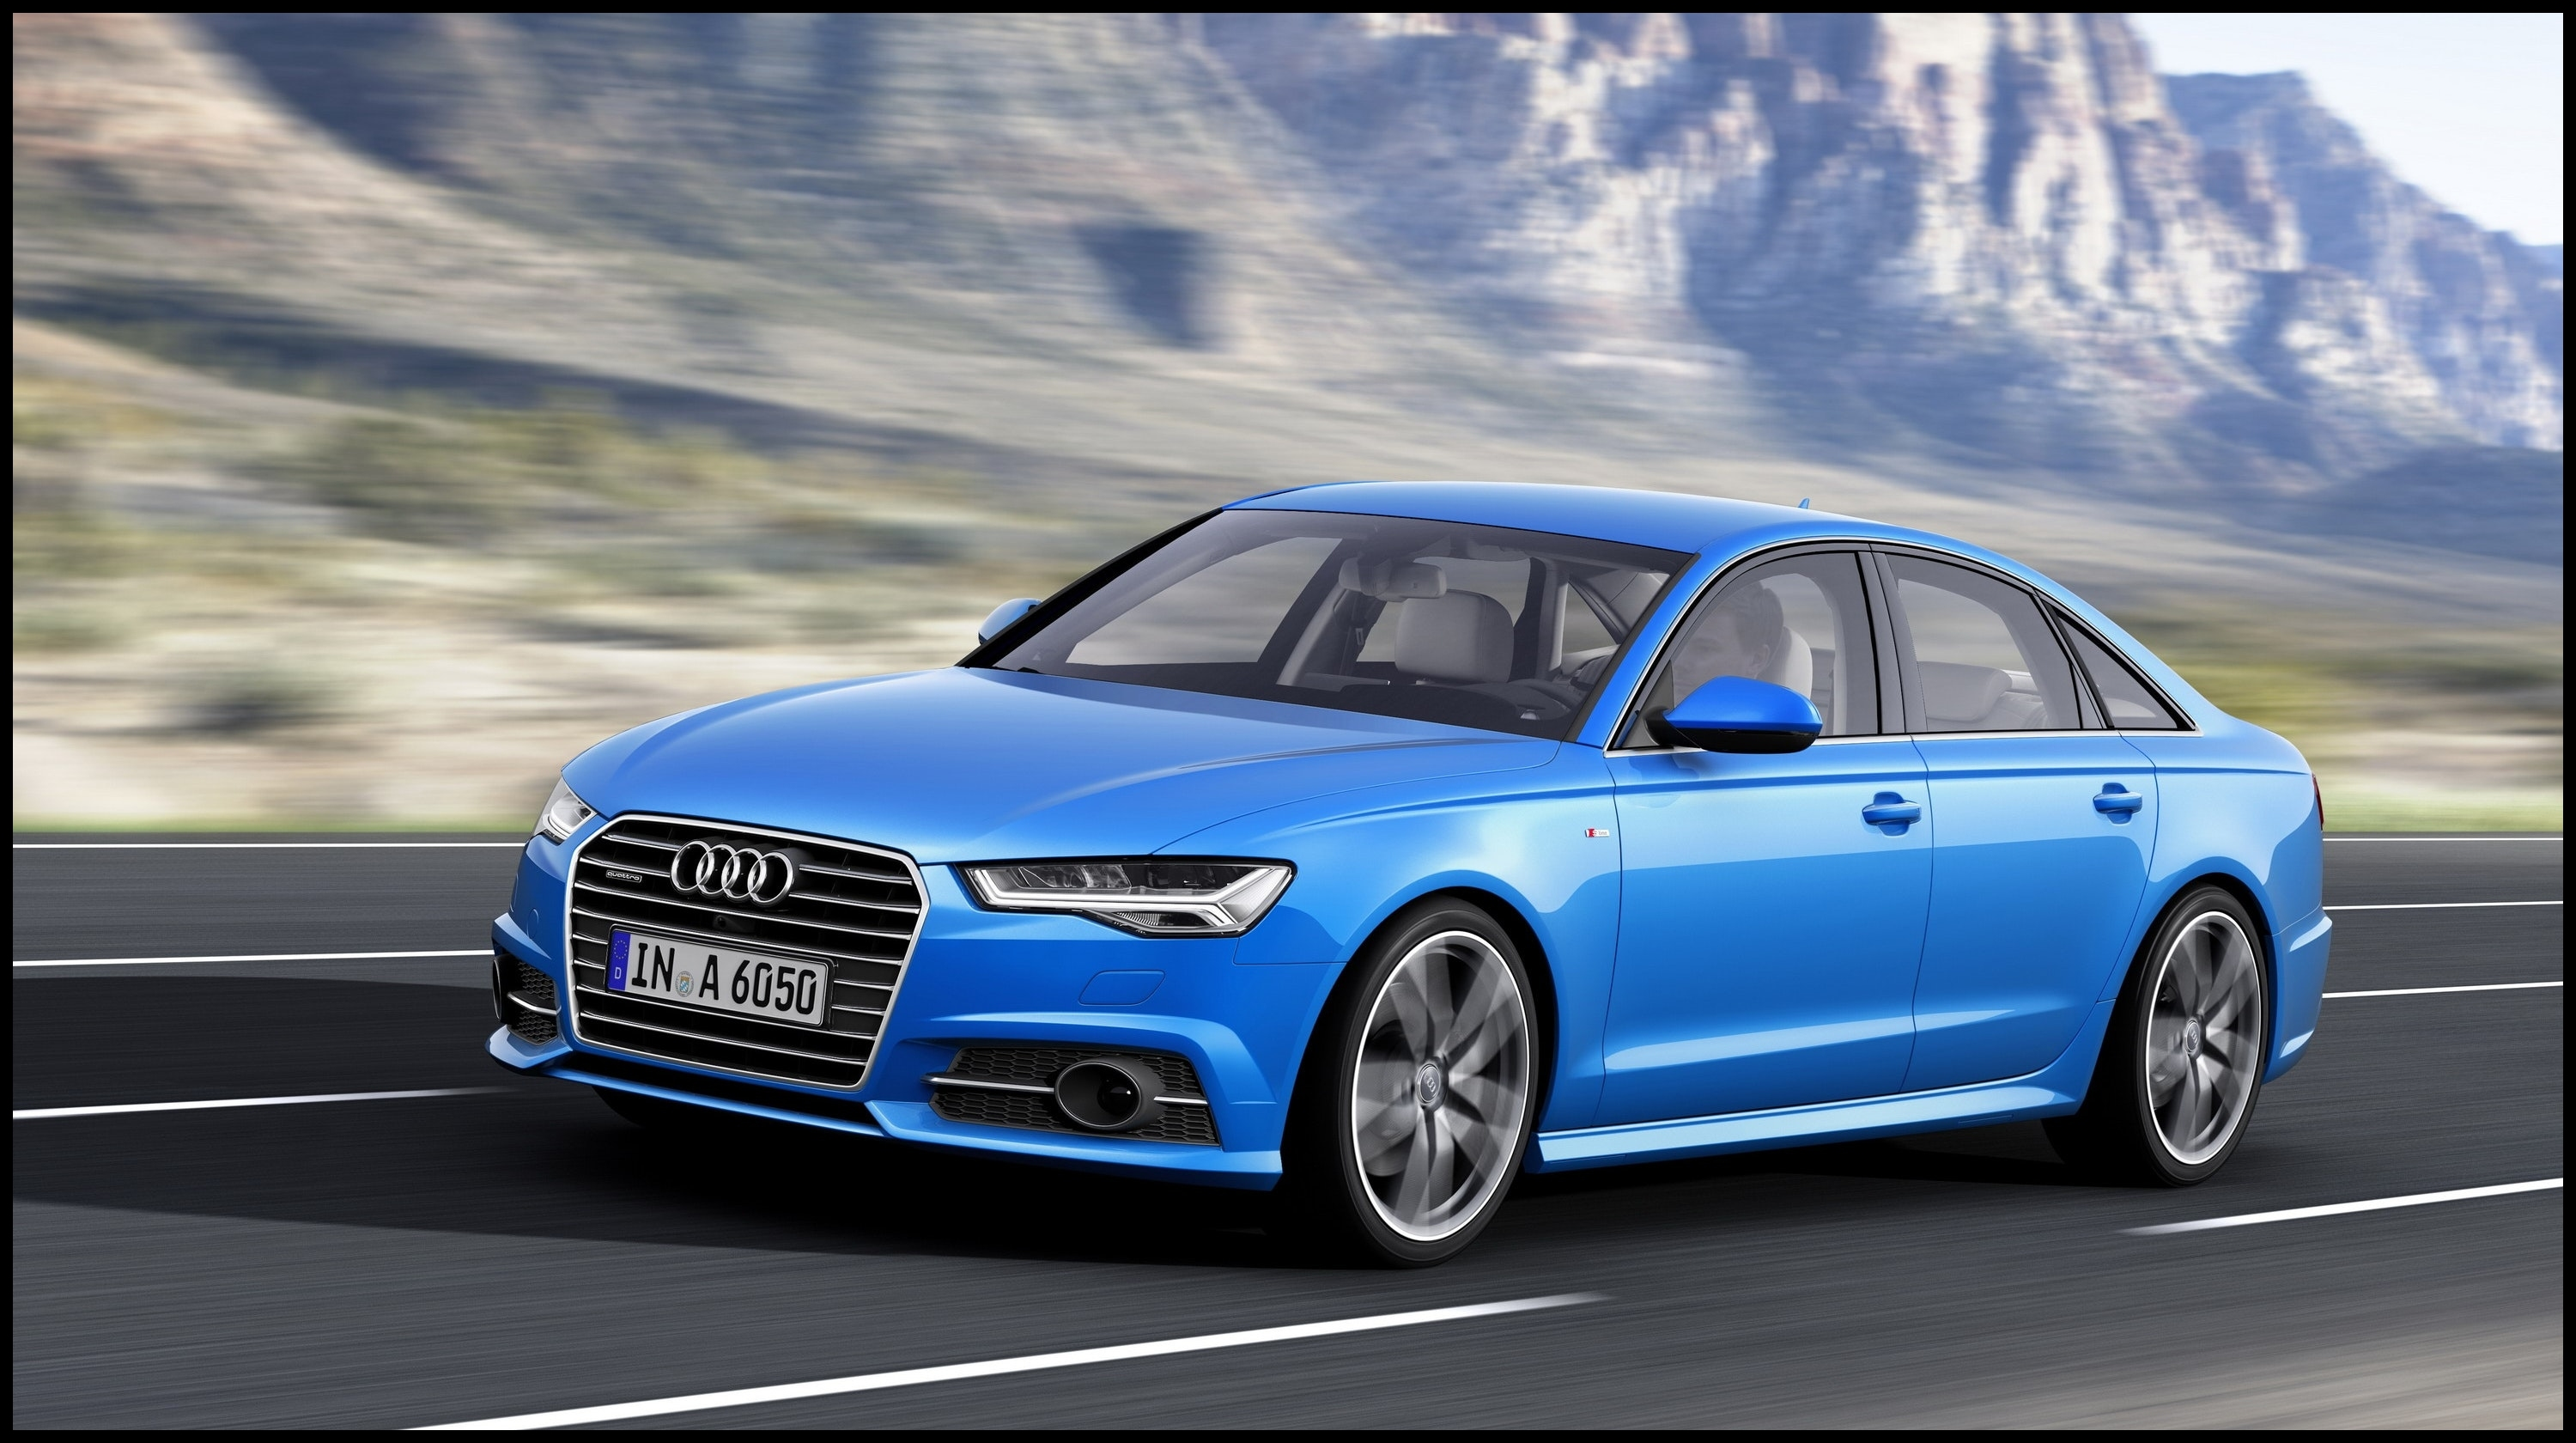 Audi A6 2018 New Review Mercedes 2018 Models New Audi A6 Avant 2017 1600 0d Auto